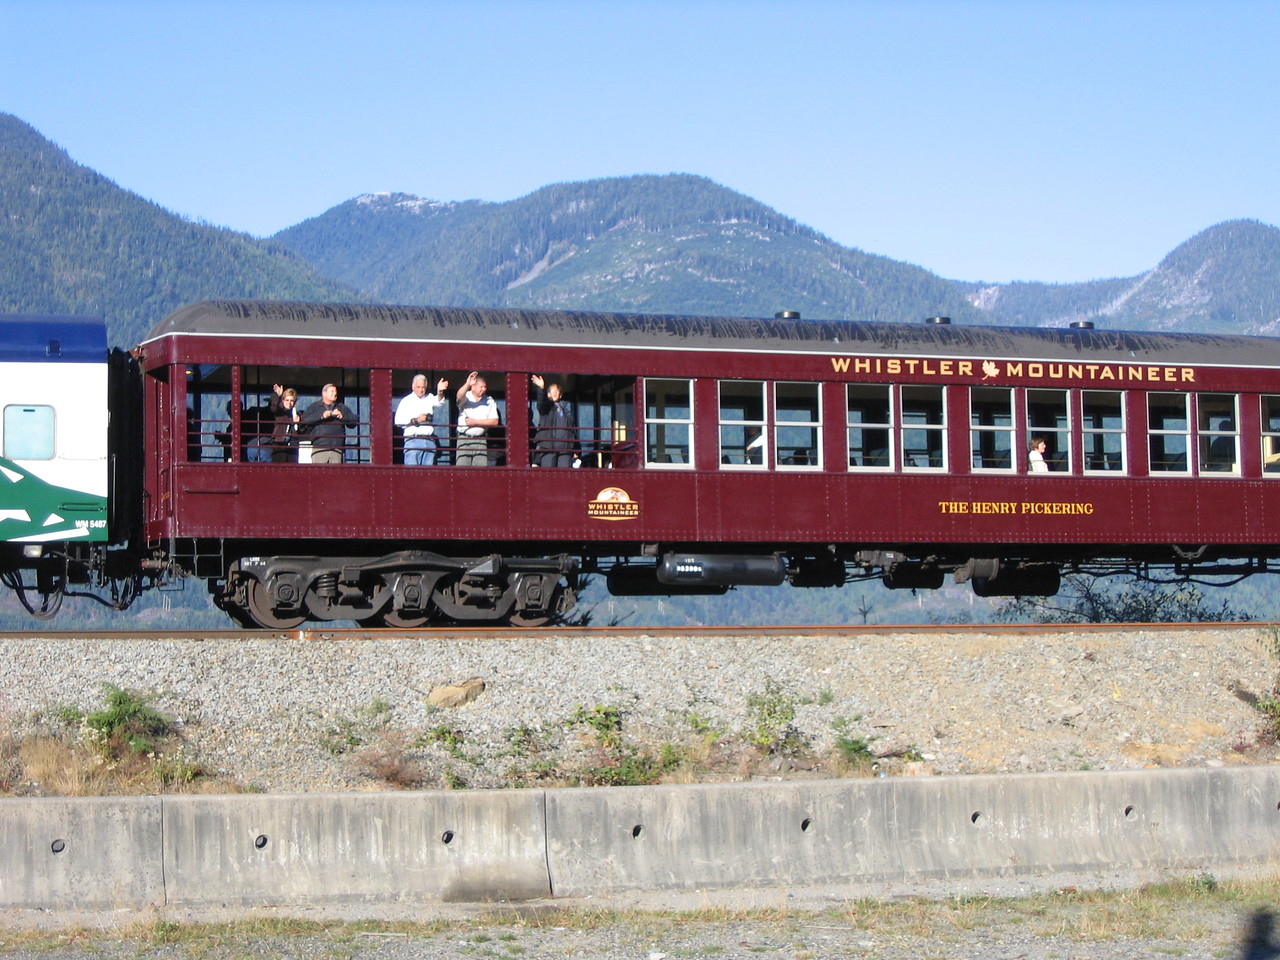 The Observation Car as it passes by.